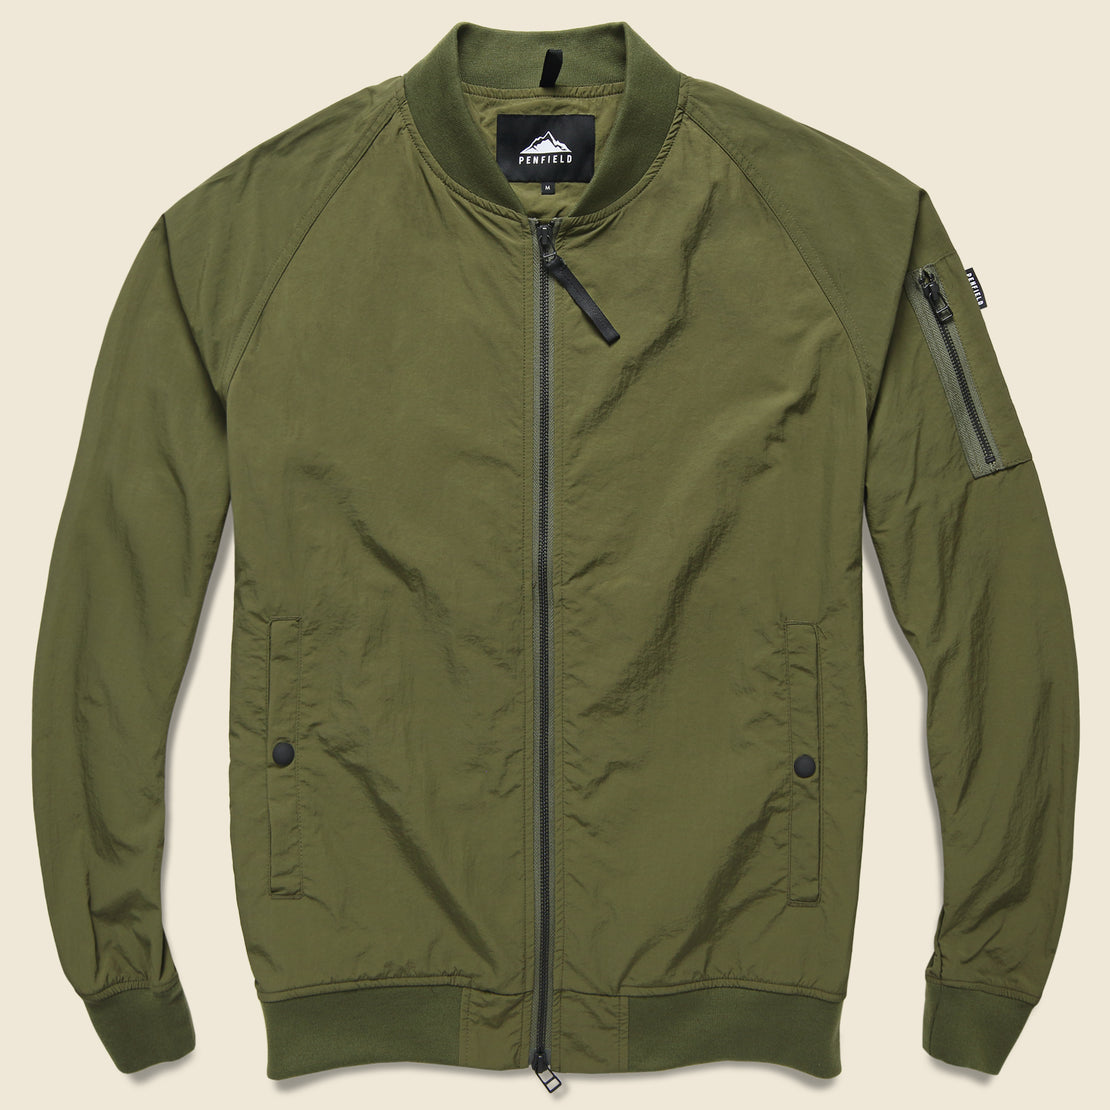 Penfield Okenfield Jacket - Olive